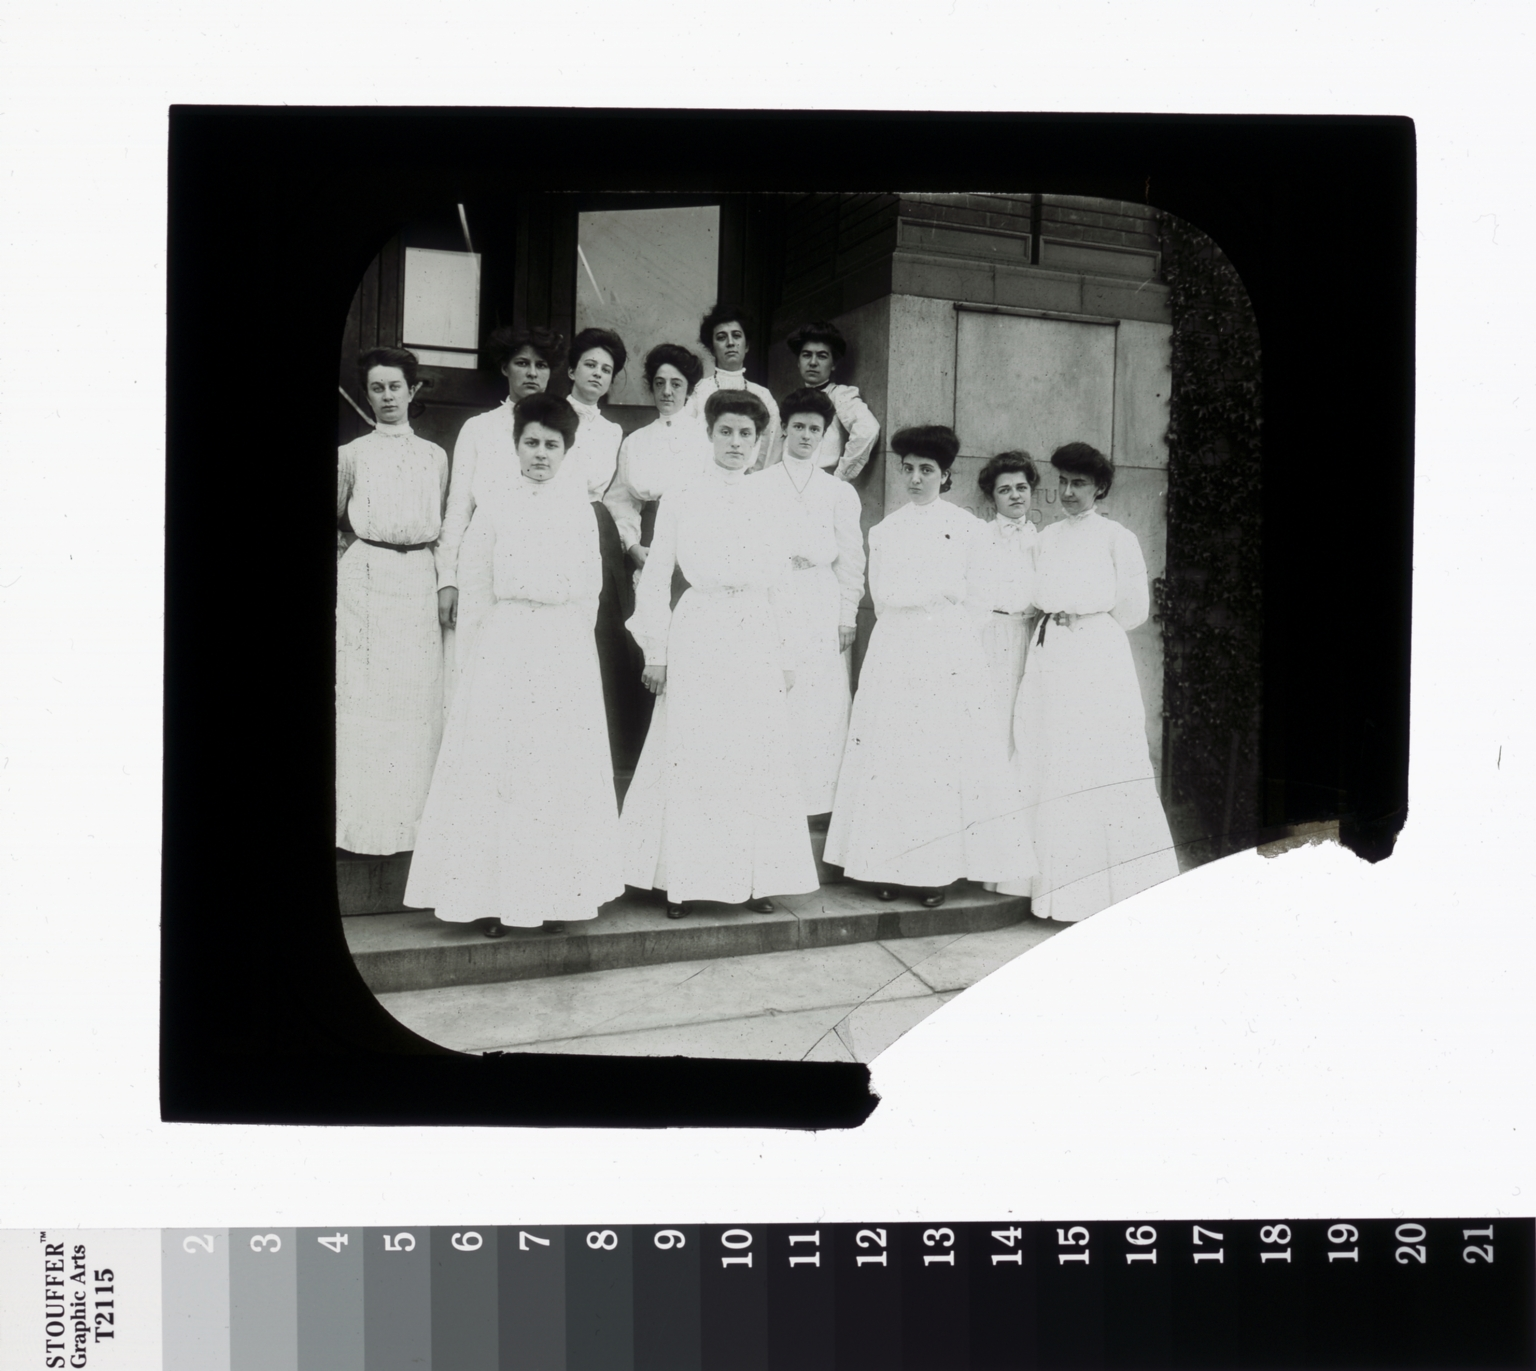 Group portrait, Domestic Science students, Rochester Athenaeum and Mechanics Institute